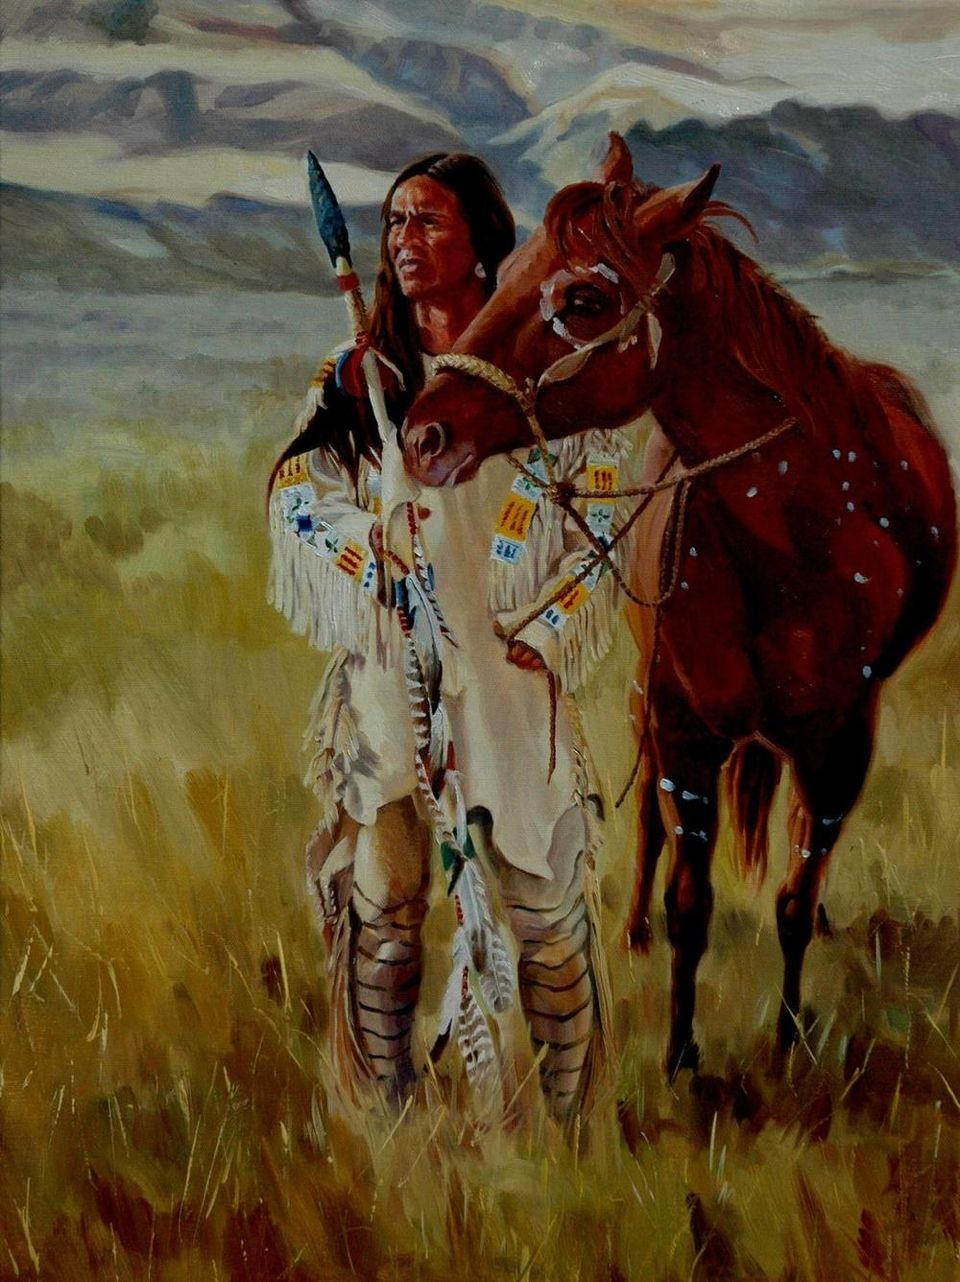 I love native art | Native American | Pinterest